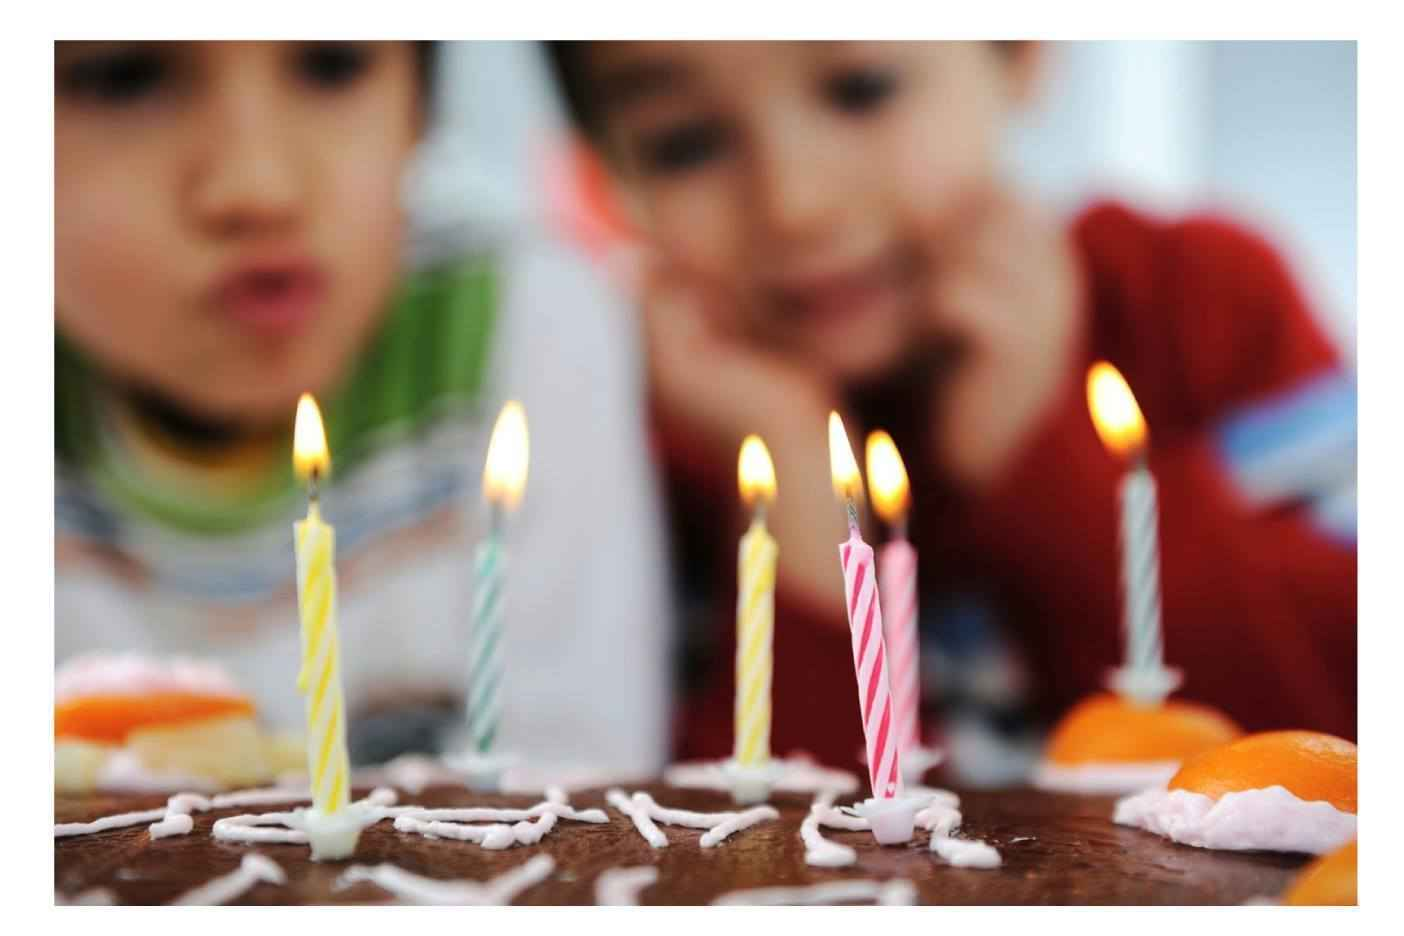 Each Birthday Happy- Every Child Celebrated image